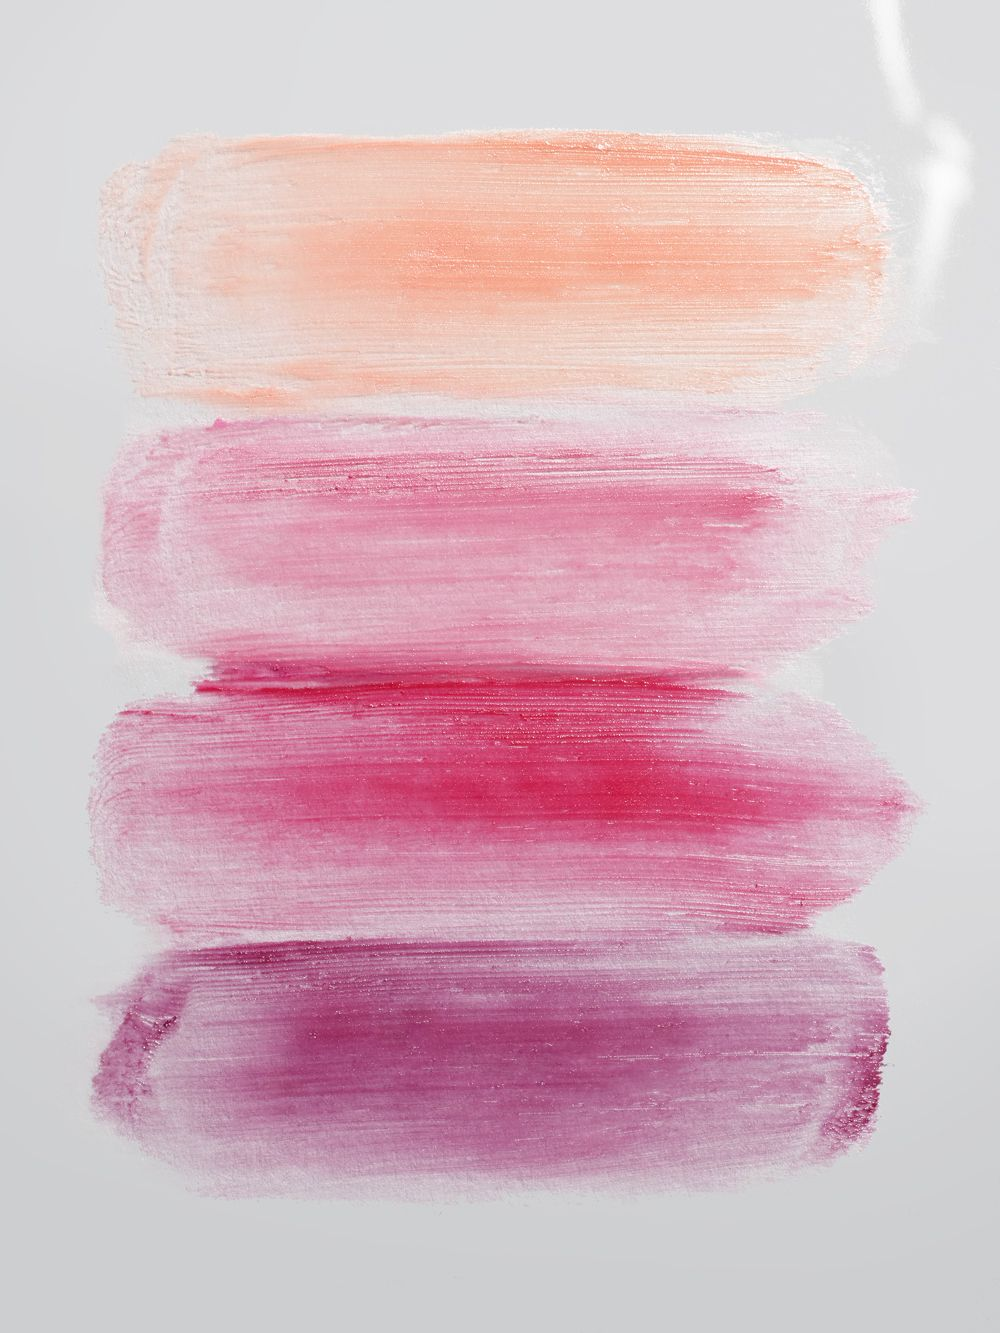 Glossier Generation G A New Kind Of Lip Color That Gives The Look